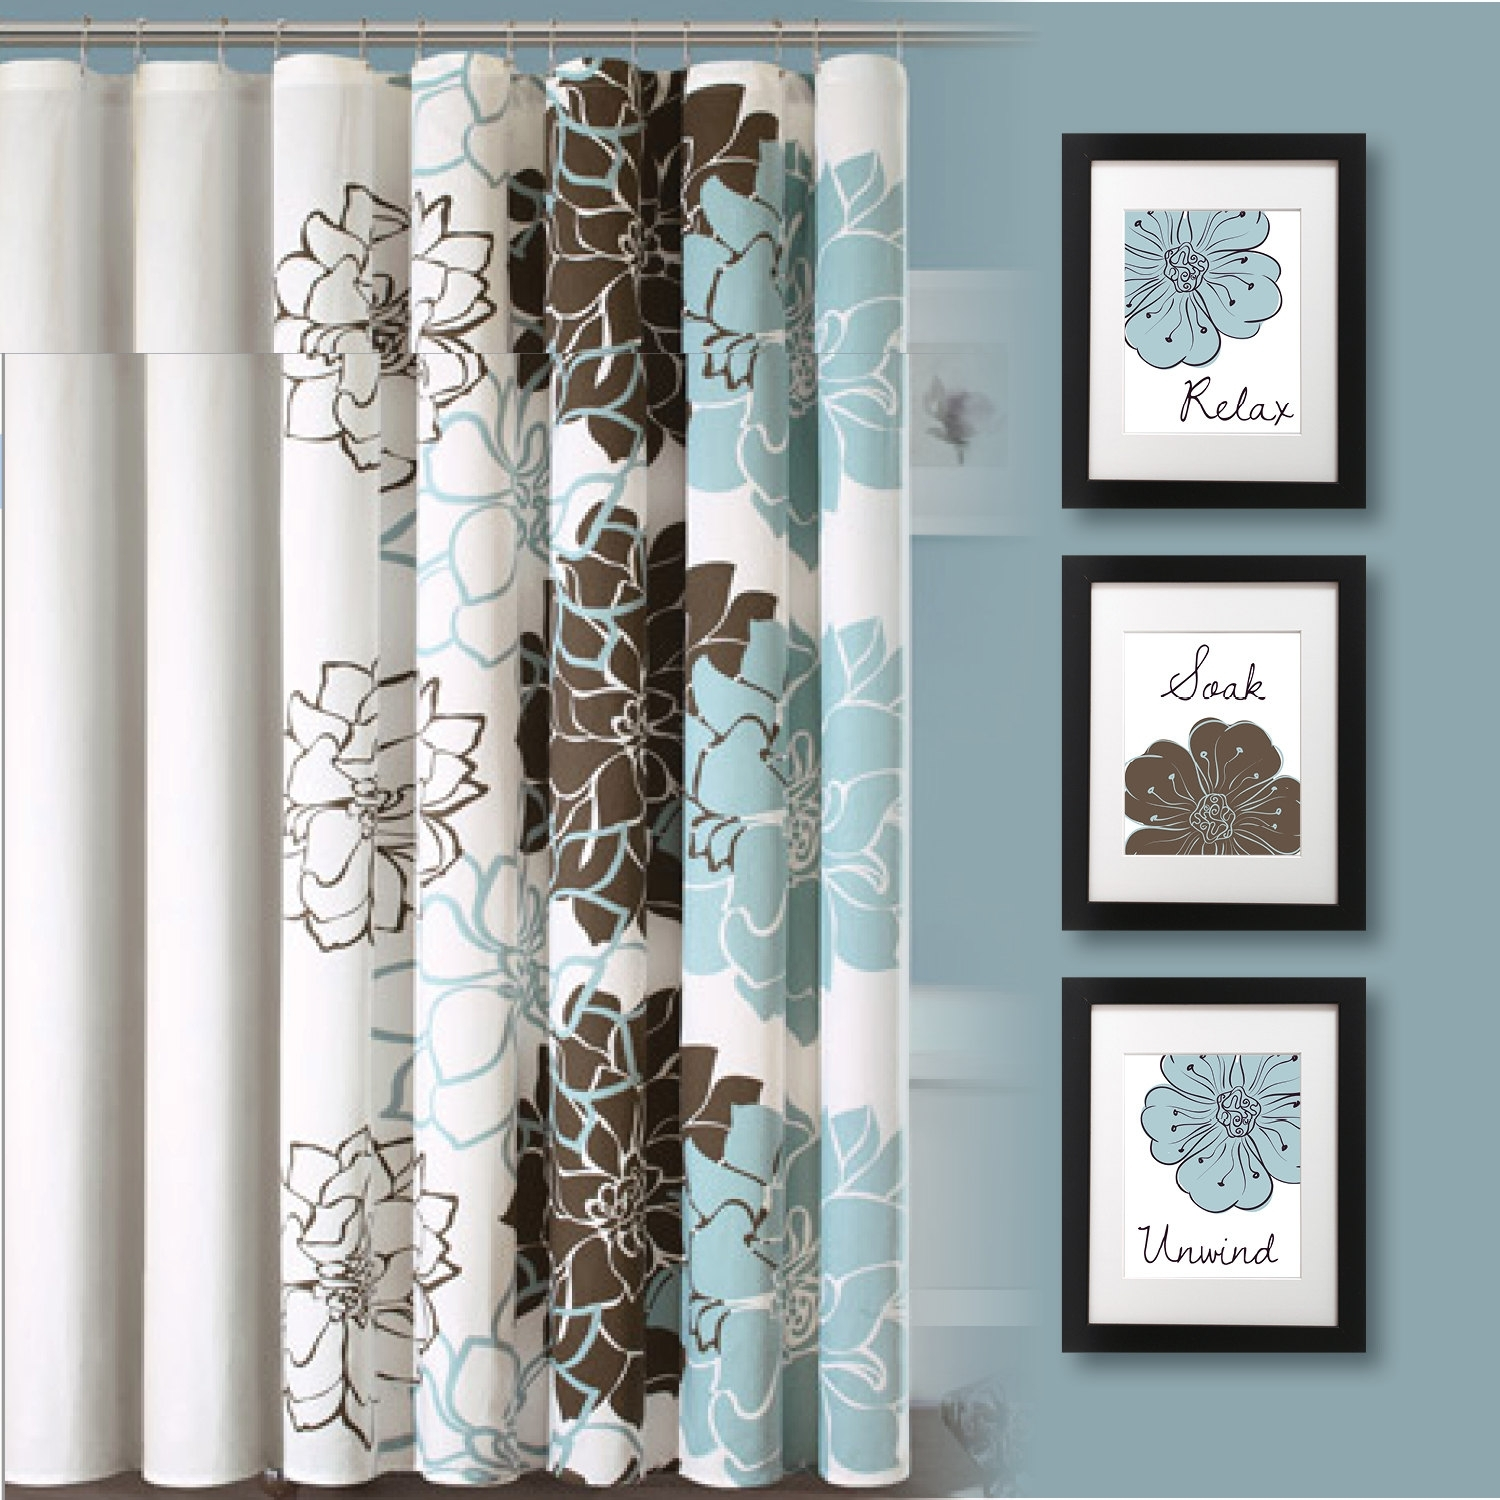 Bathroom Ideas : Blue And Brown Floral Print Bathroom Curtain Square With Regard To Current Bathroom Wall Art Decors (View 14 of 15)